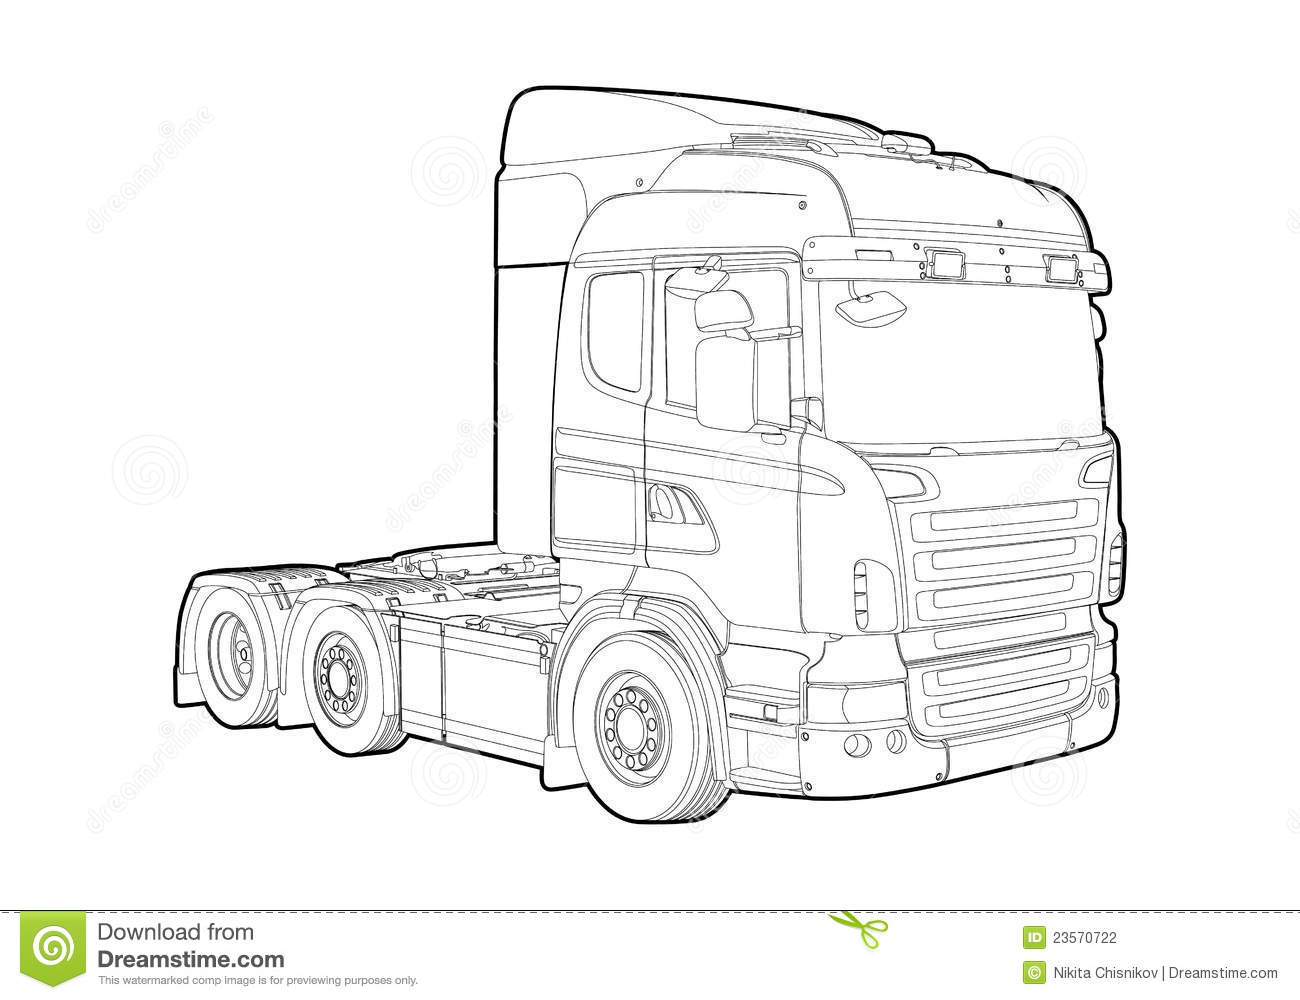 Outline truck stock illustration. Image of fuel, speed